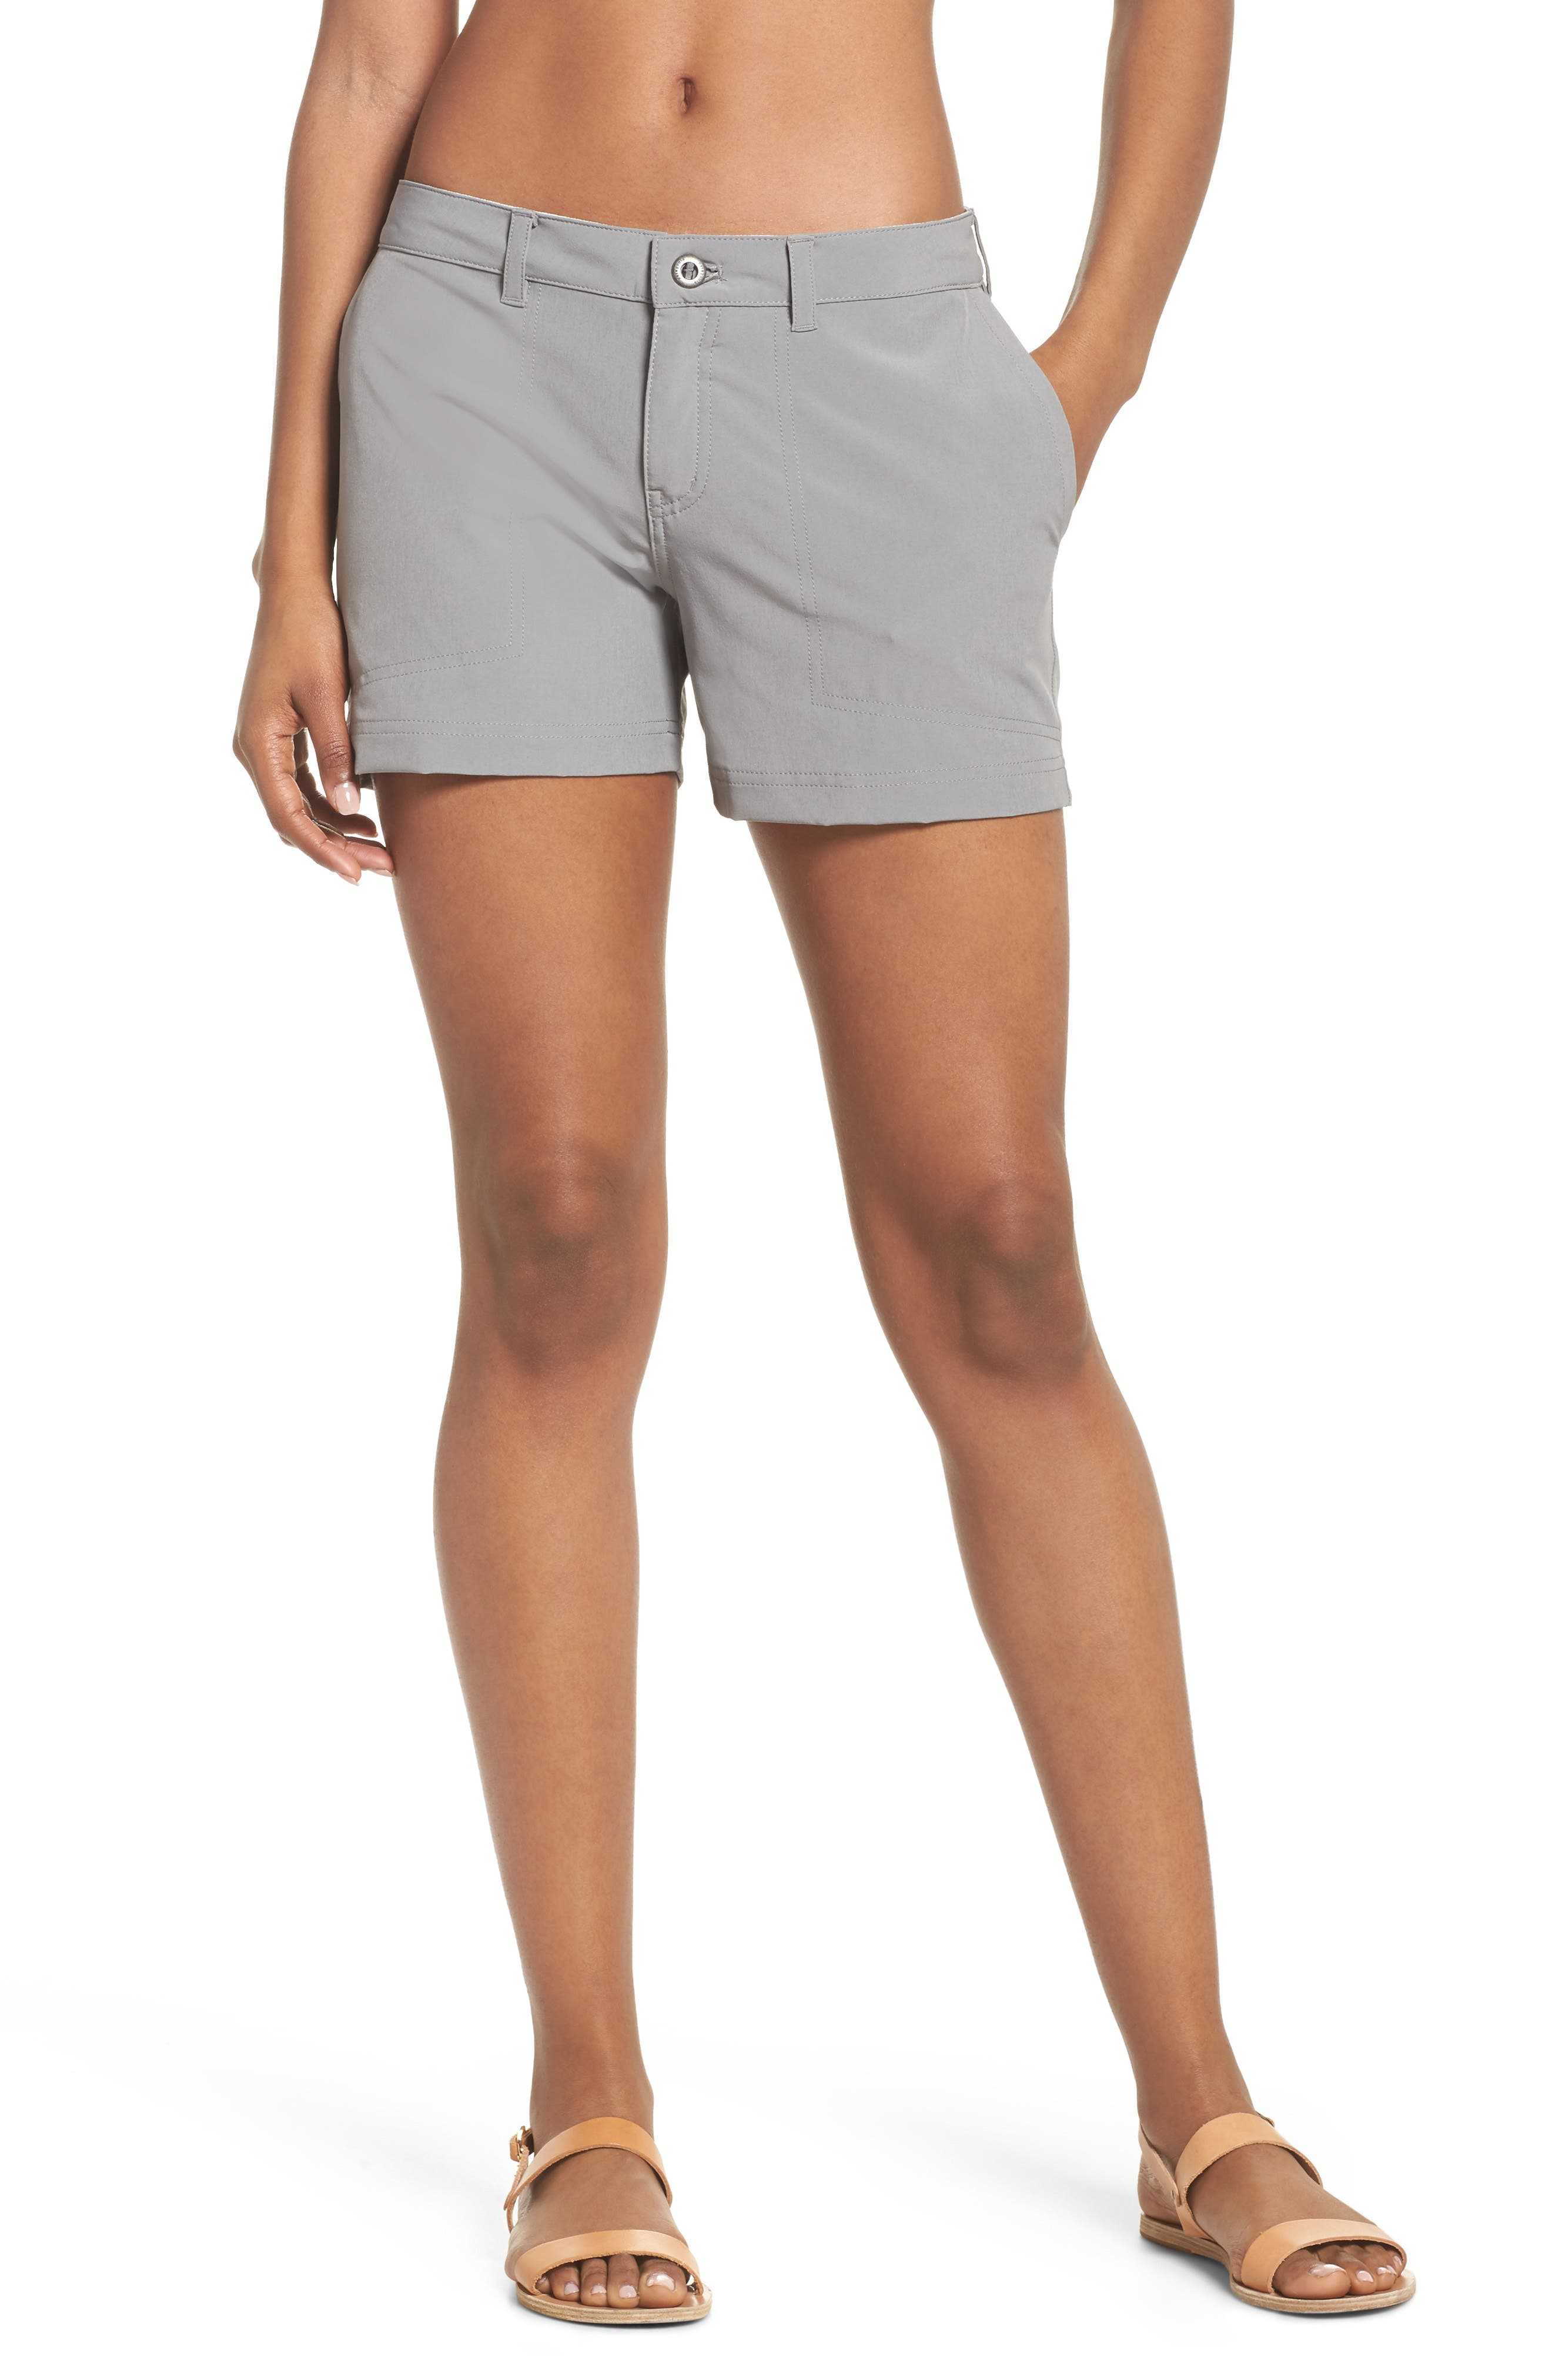 Happy Hike Shorts,                         Main,                         color, Feather Grey